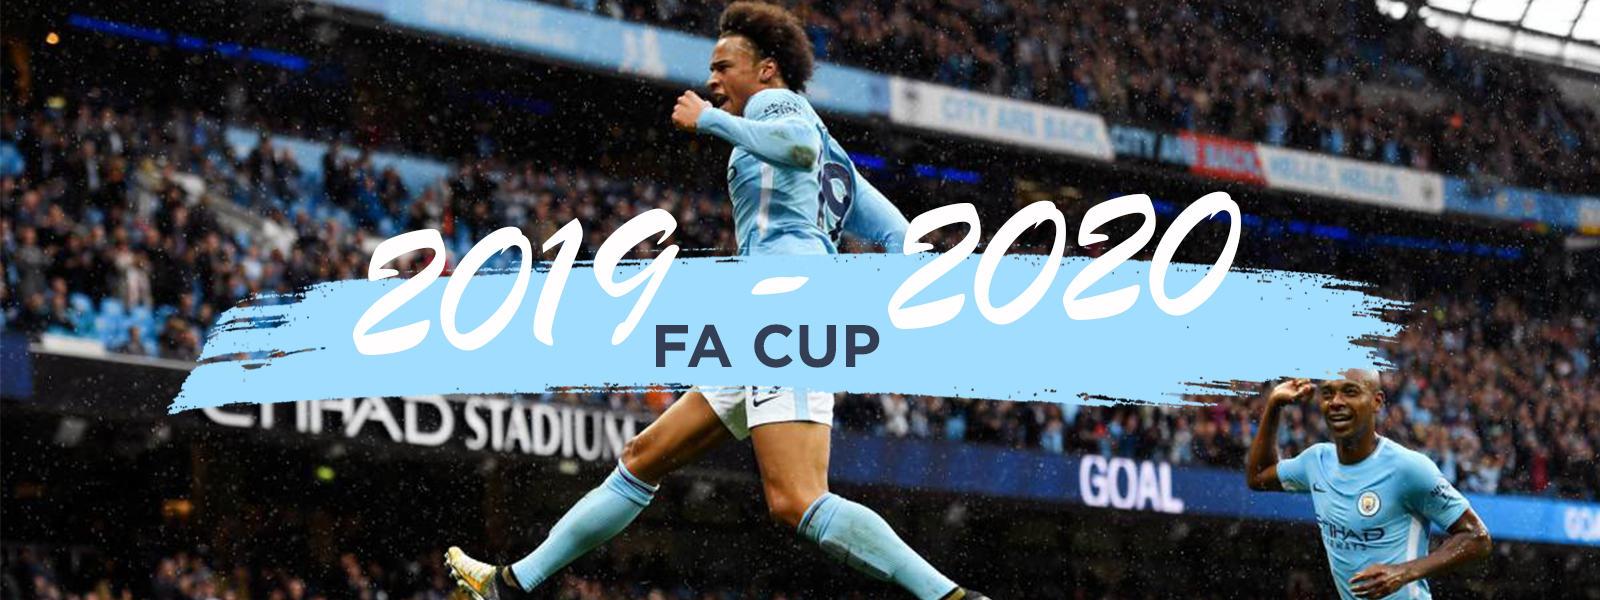 SoccerTipsters Blog | FA Cup 2019 - 2020 Season Reviews